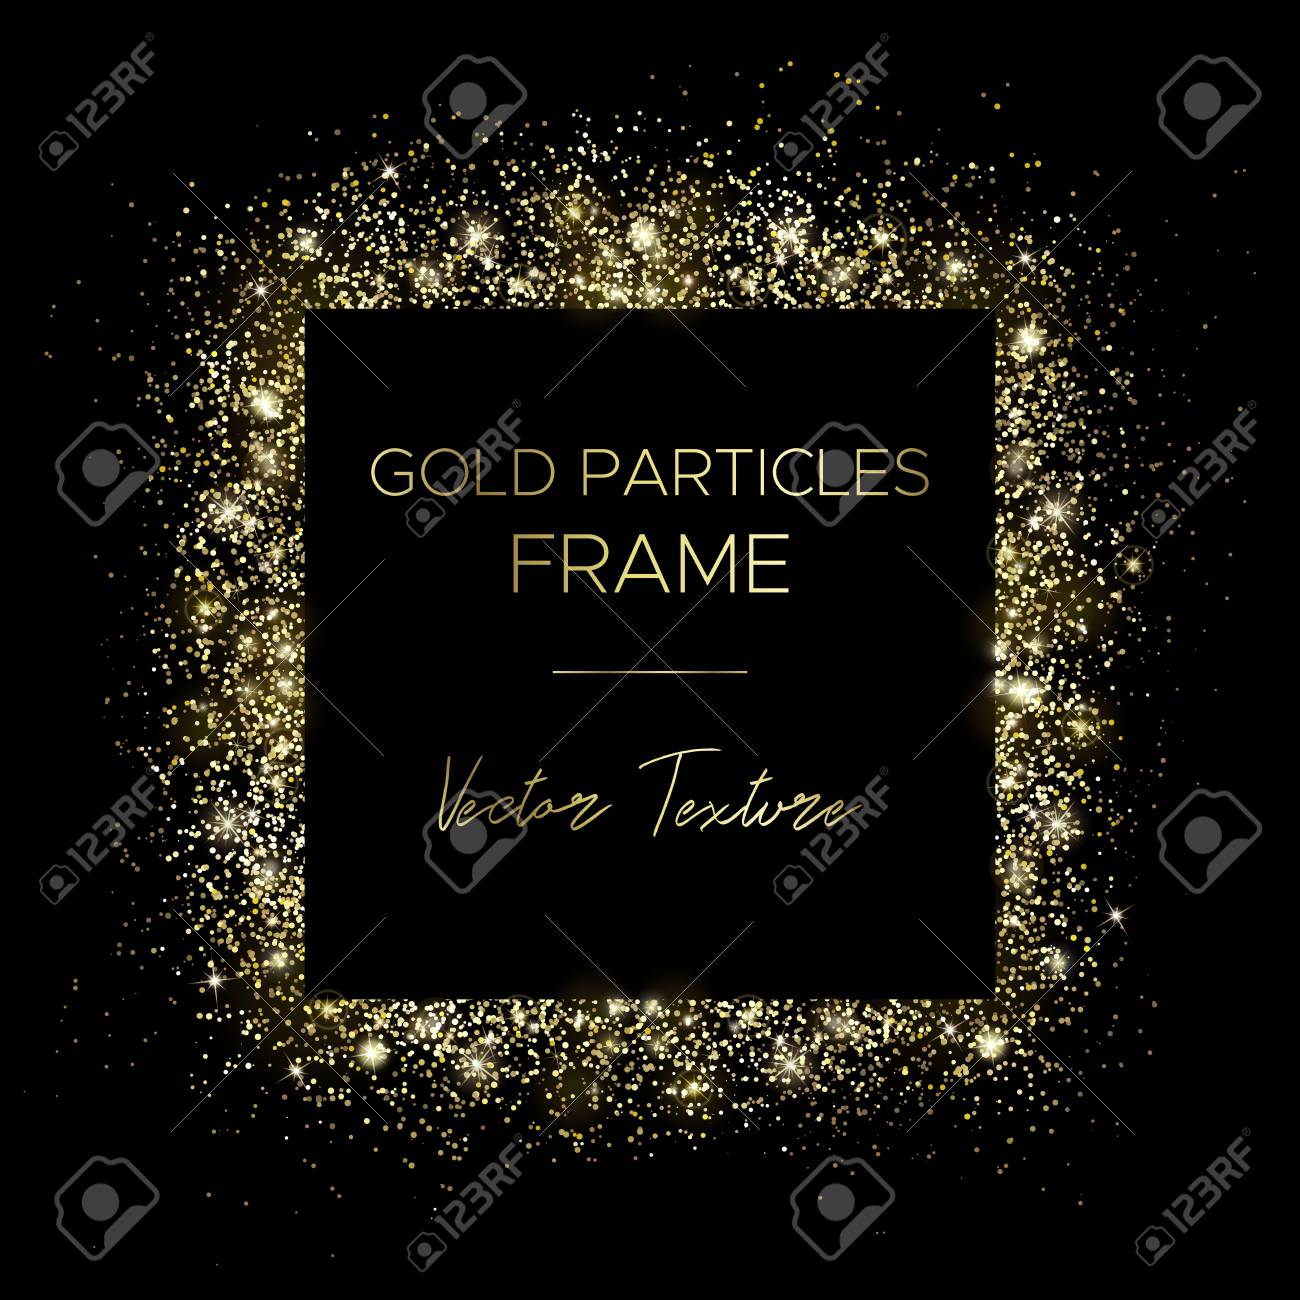 Golden square. Frame of gold particles and text in the center. Use for advertising, sale banner, postcard or cover. Box of golden powder and light effects. Luxury glitter sparkling and glowing sparks. - 122519667